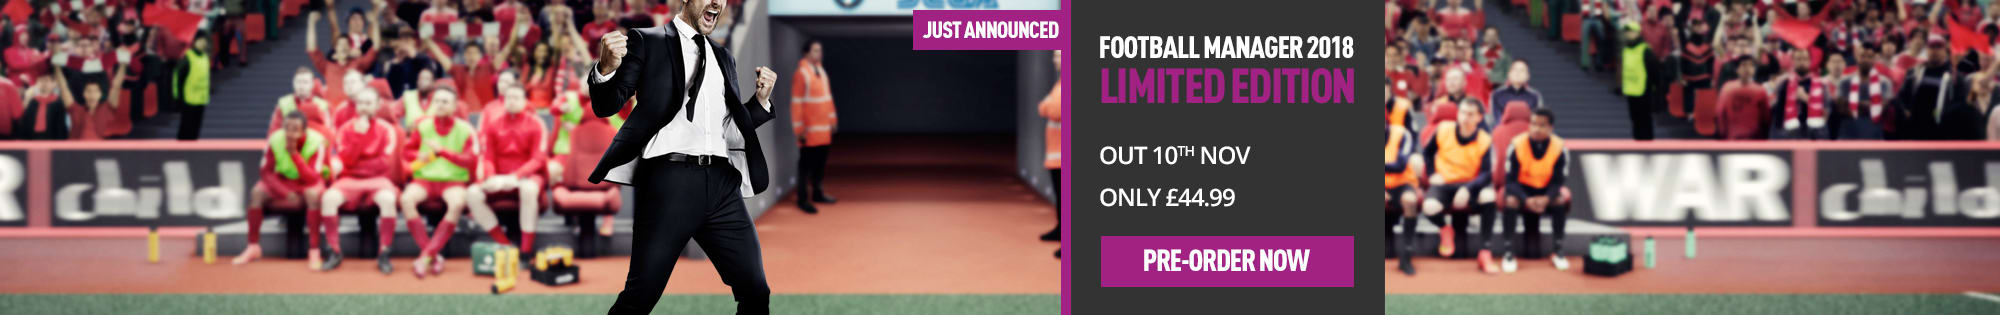 Just Announced! Football Manager 2018 - Homepage banner